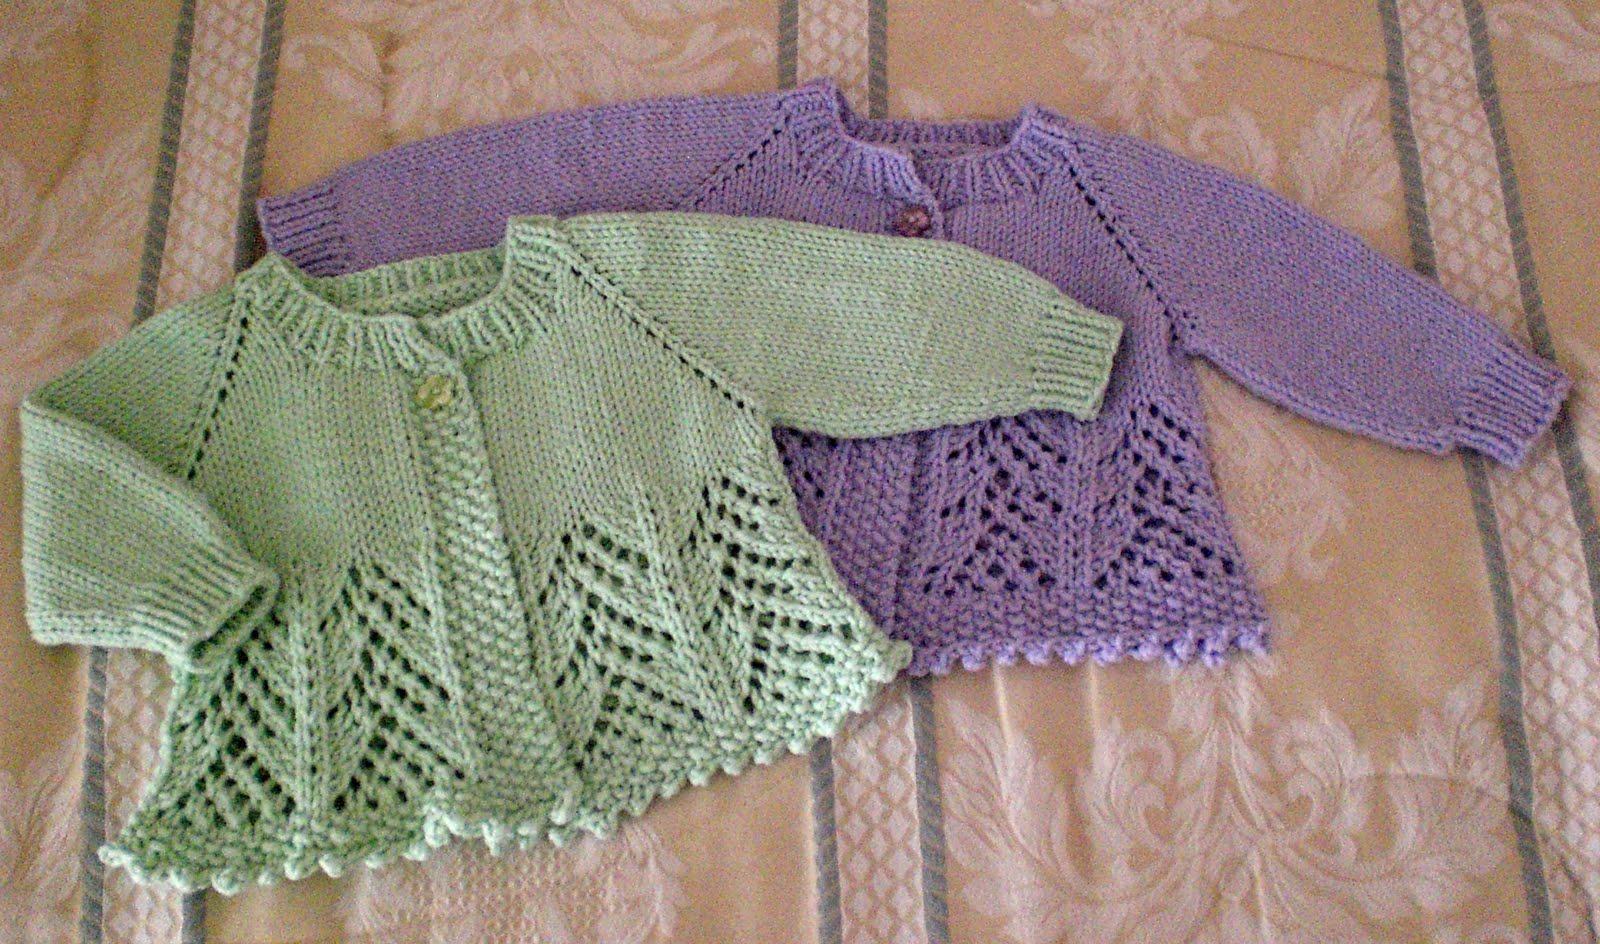 Baby Girl Knitted Sweater Pattern : Day to Day: FO: more baby sweaters